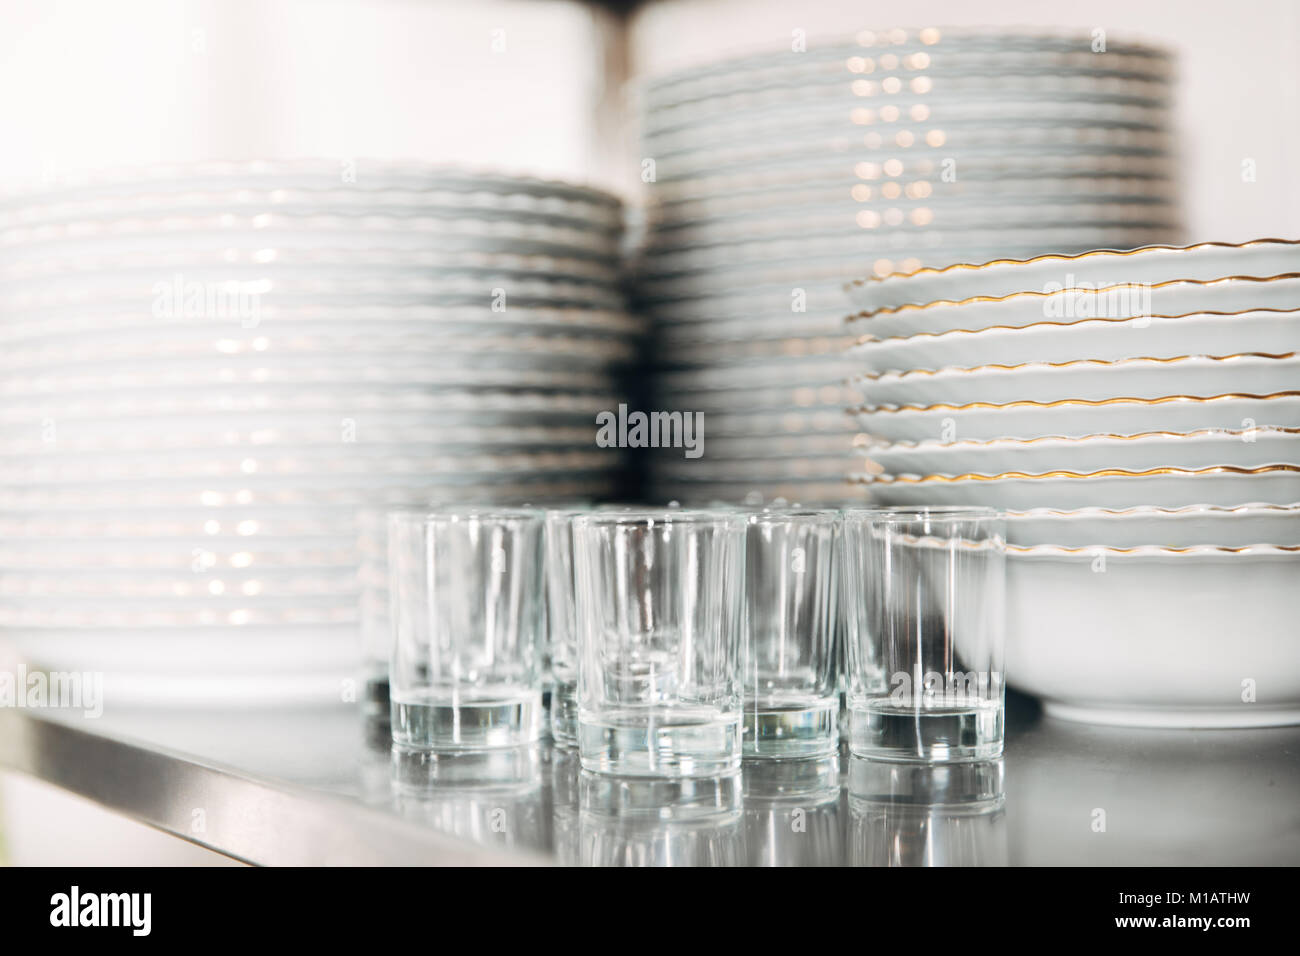 close-up shot of stacked clean tableware and glasses at restaurant Stock Photo